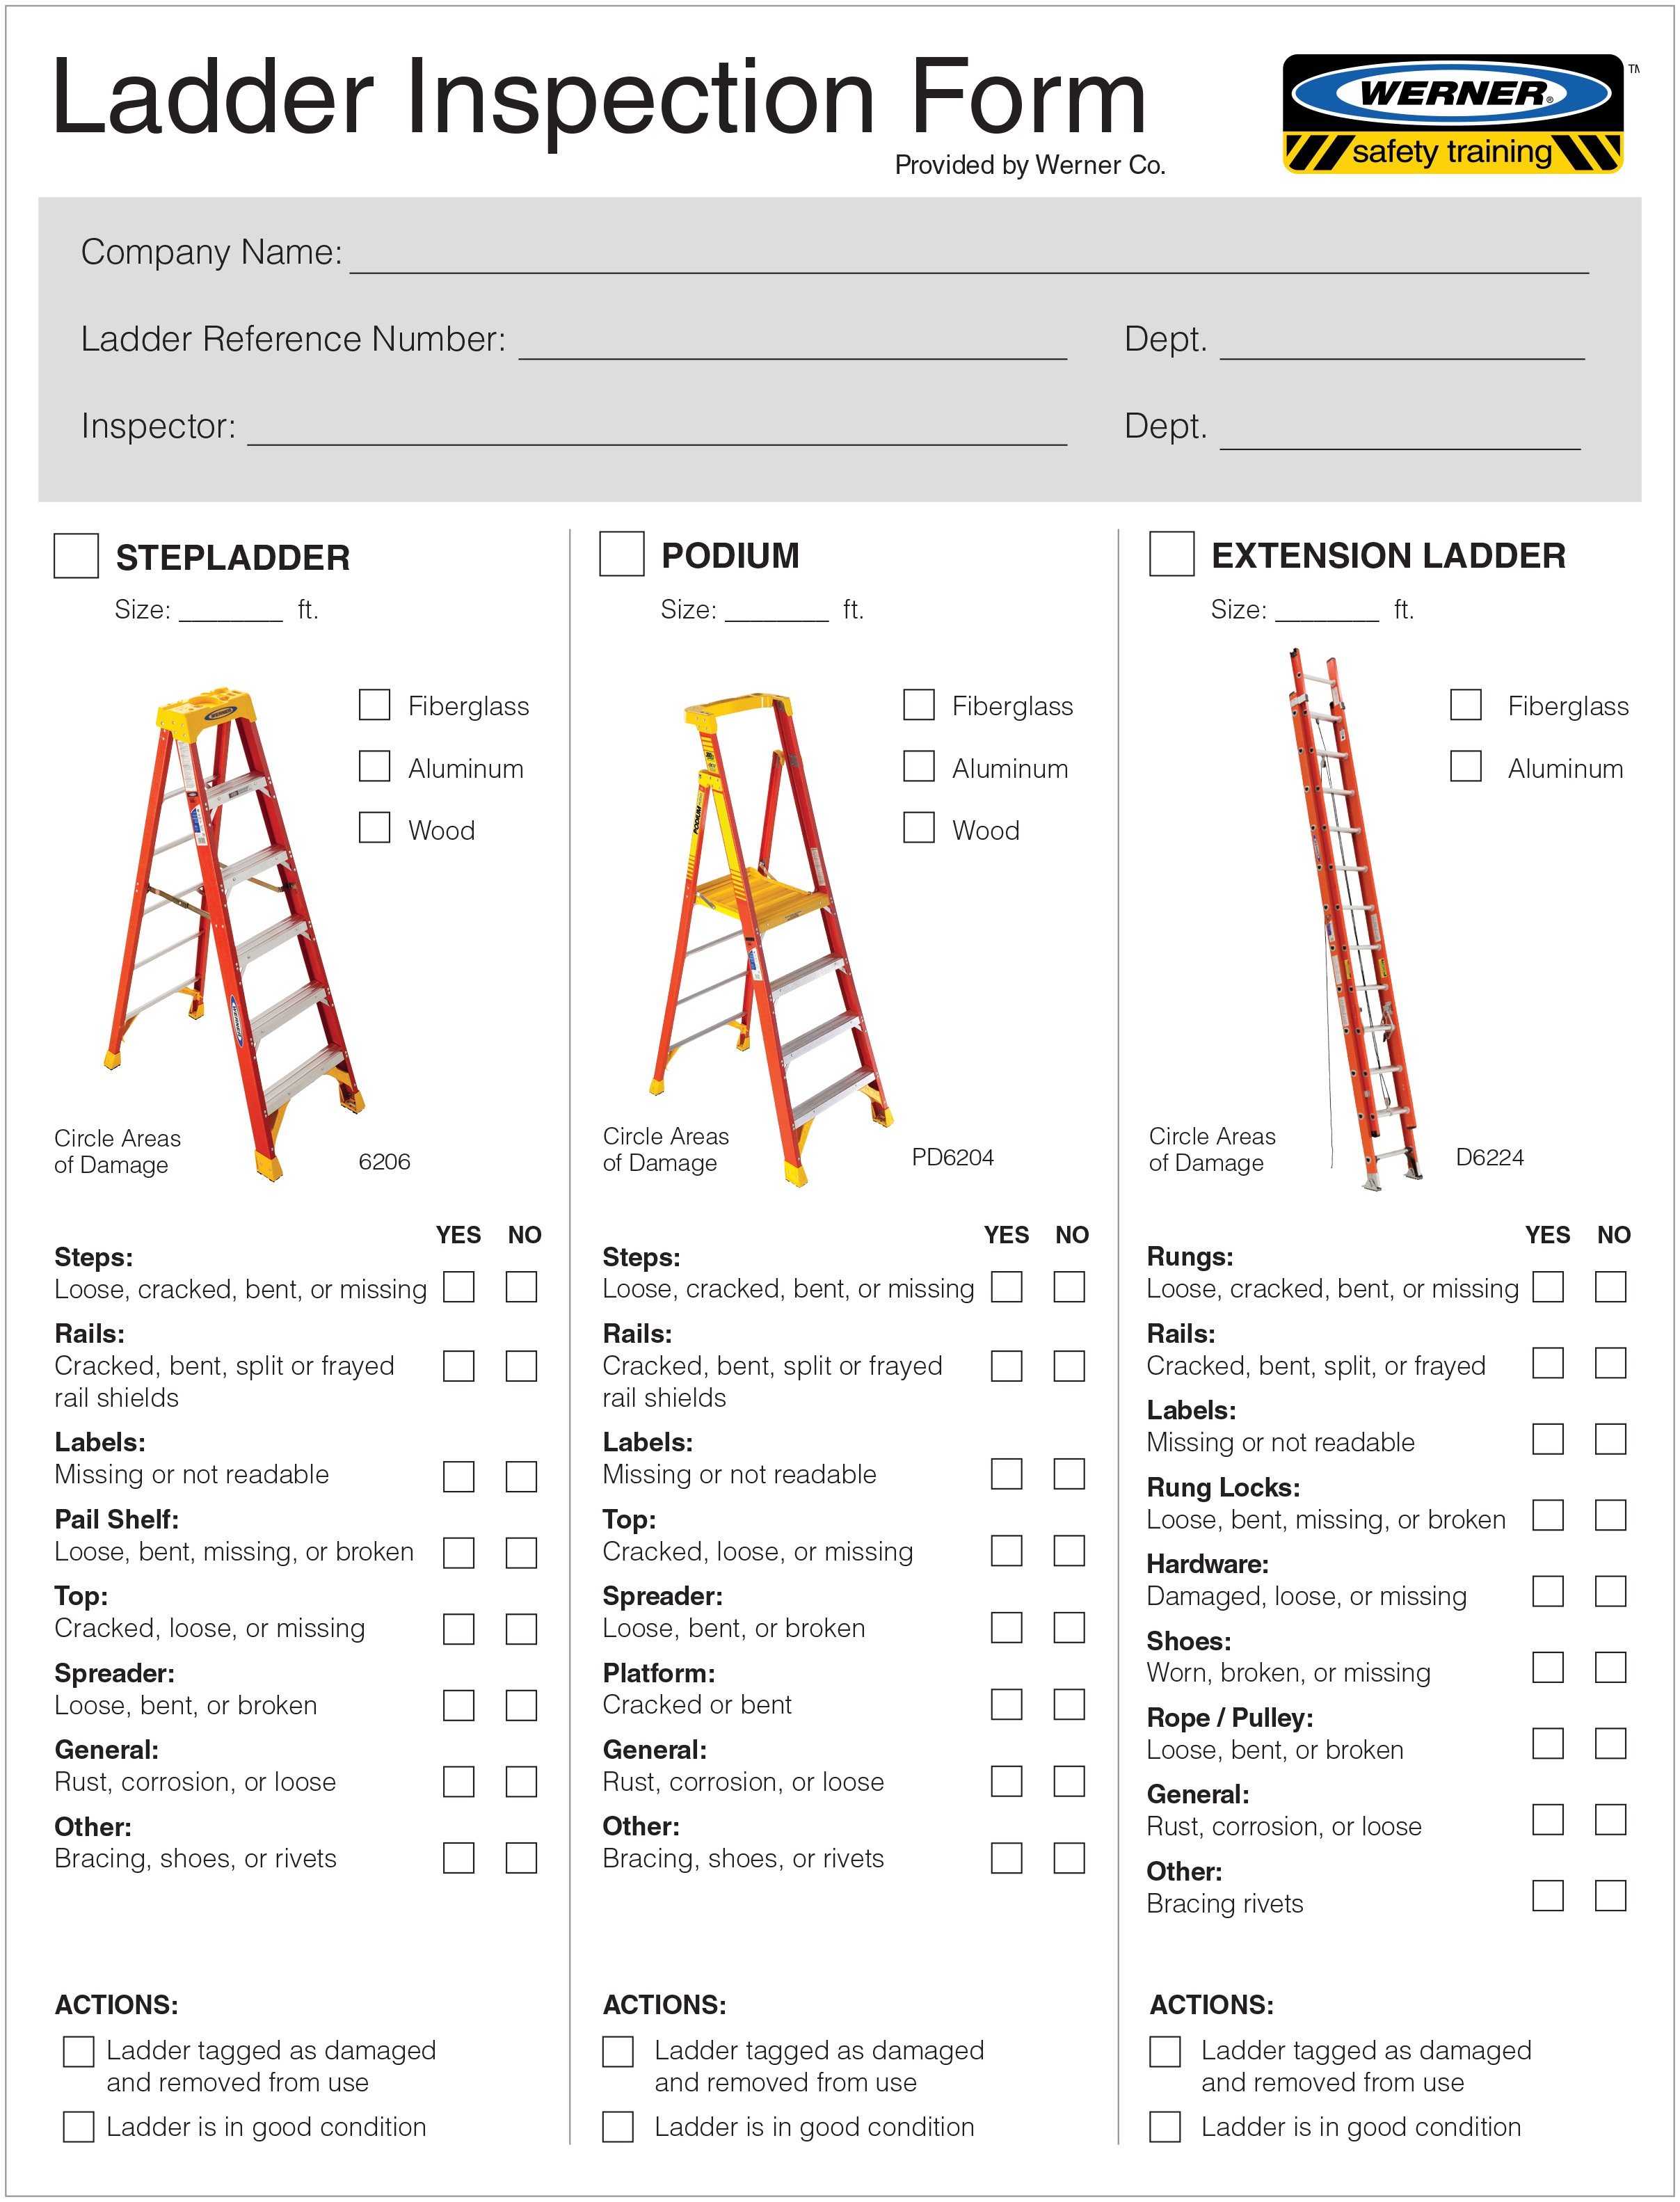 2018-ladder-safety-inspection-form-1.jpg